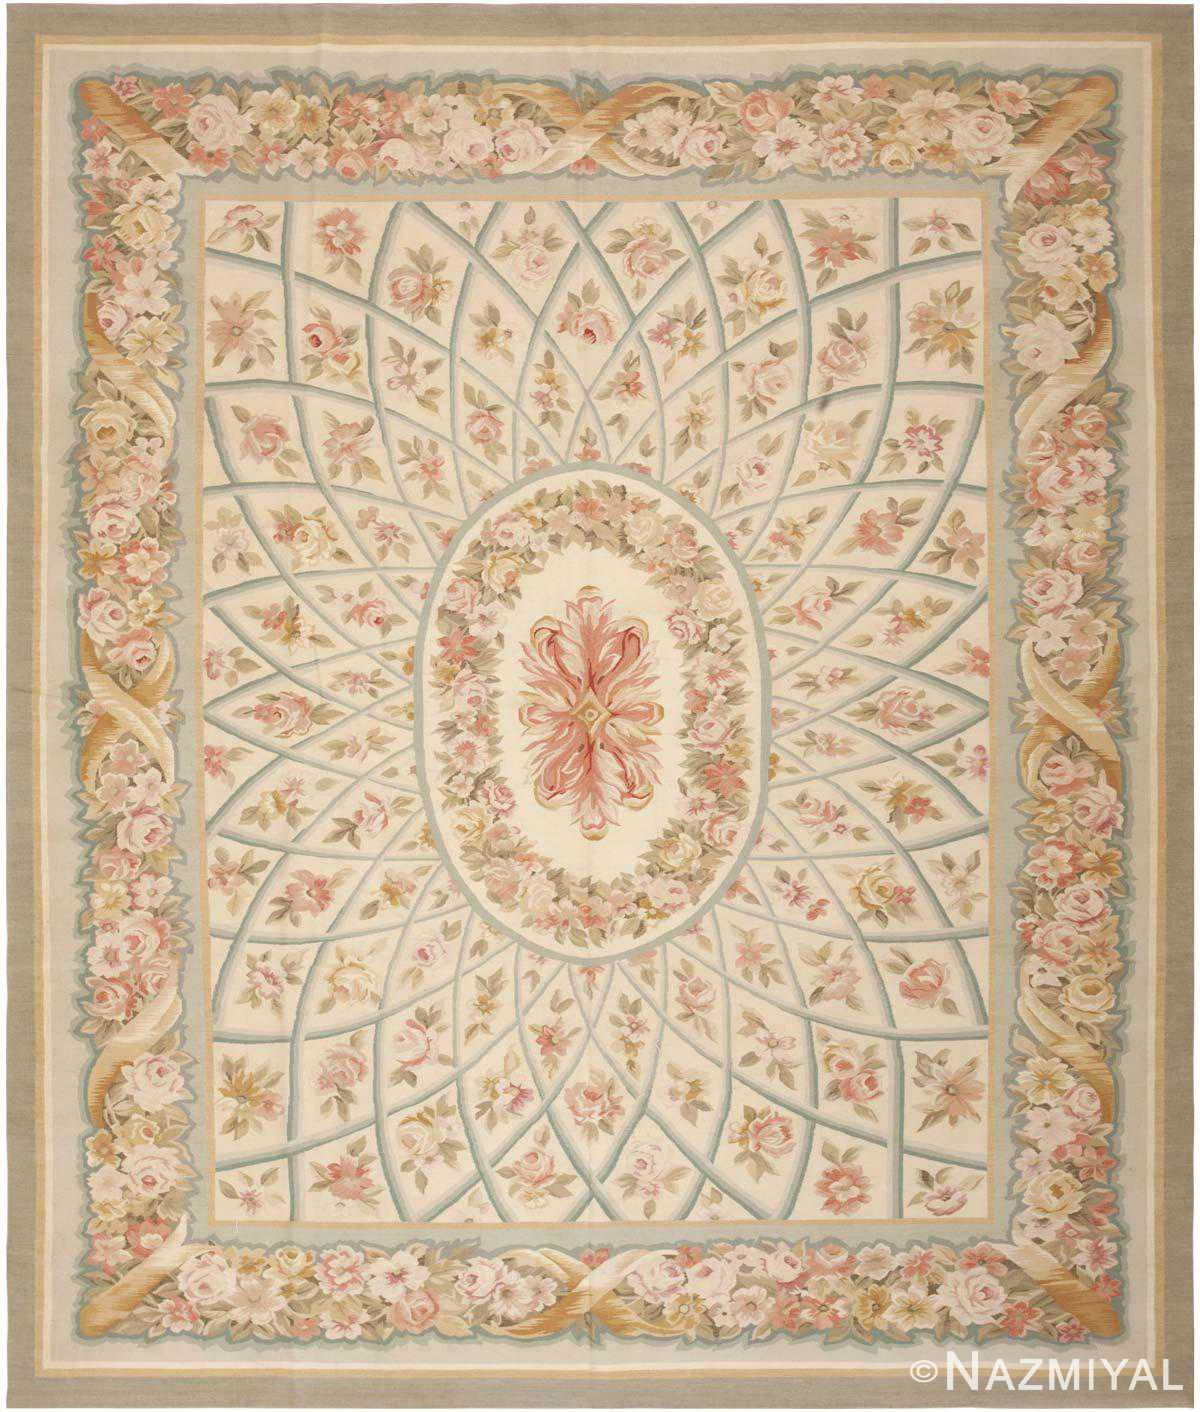 Chinese Carpets And Rugs: Modern Aubusson Rug 44690 By Nazmiyal